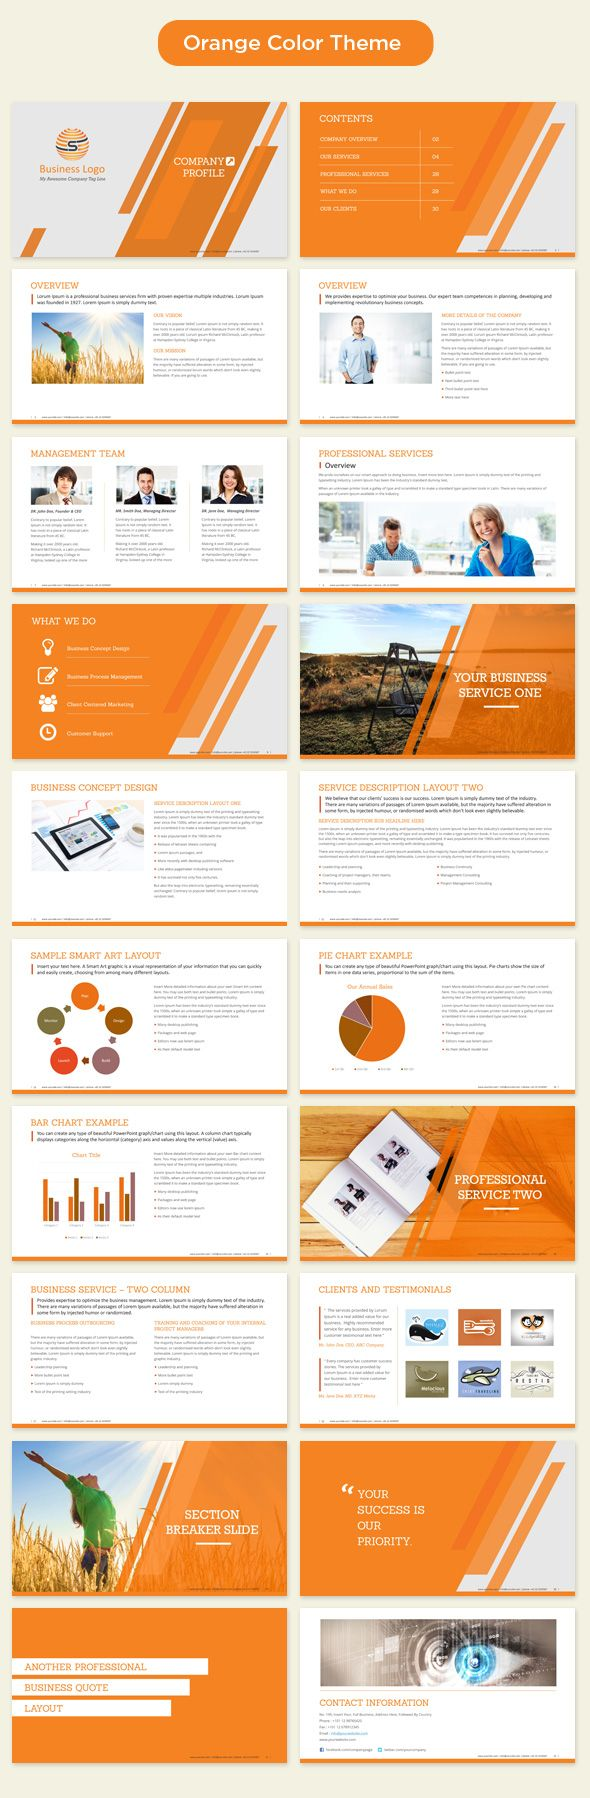 Company profile template PowerPoint. The template is available in 4 unique color themes.  Download now from https://slidehelper.com/company-profile-powerpoint-template-prime-corporate/    See more professional PowerPoint templates https://slidehelper.com